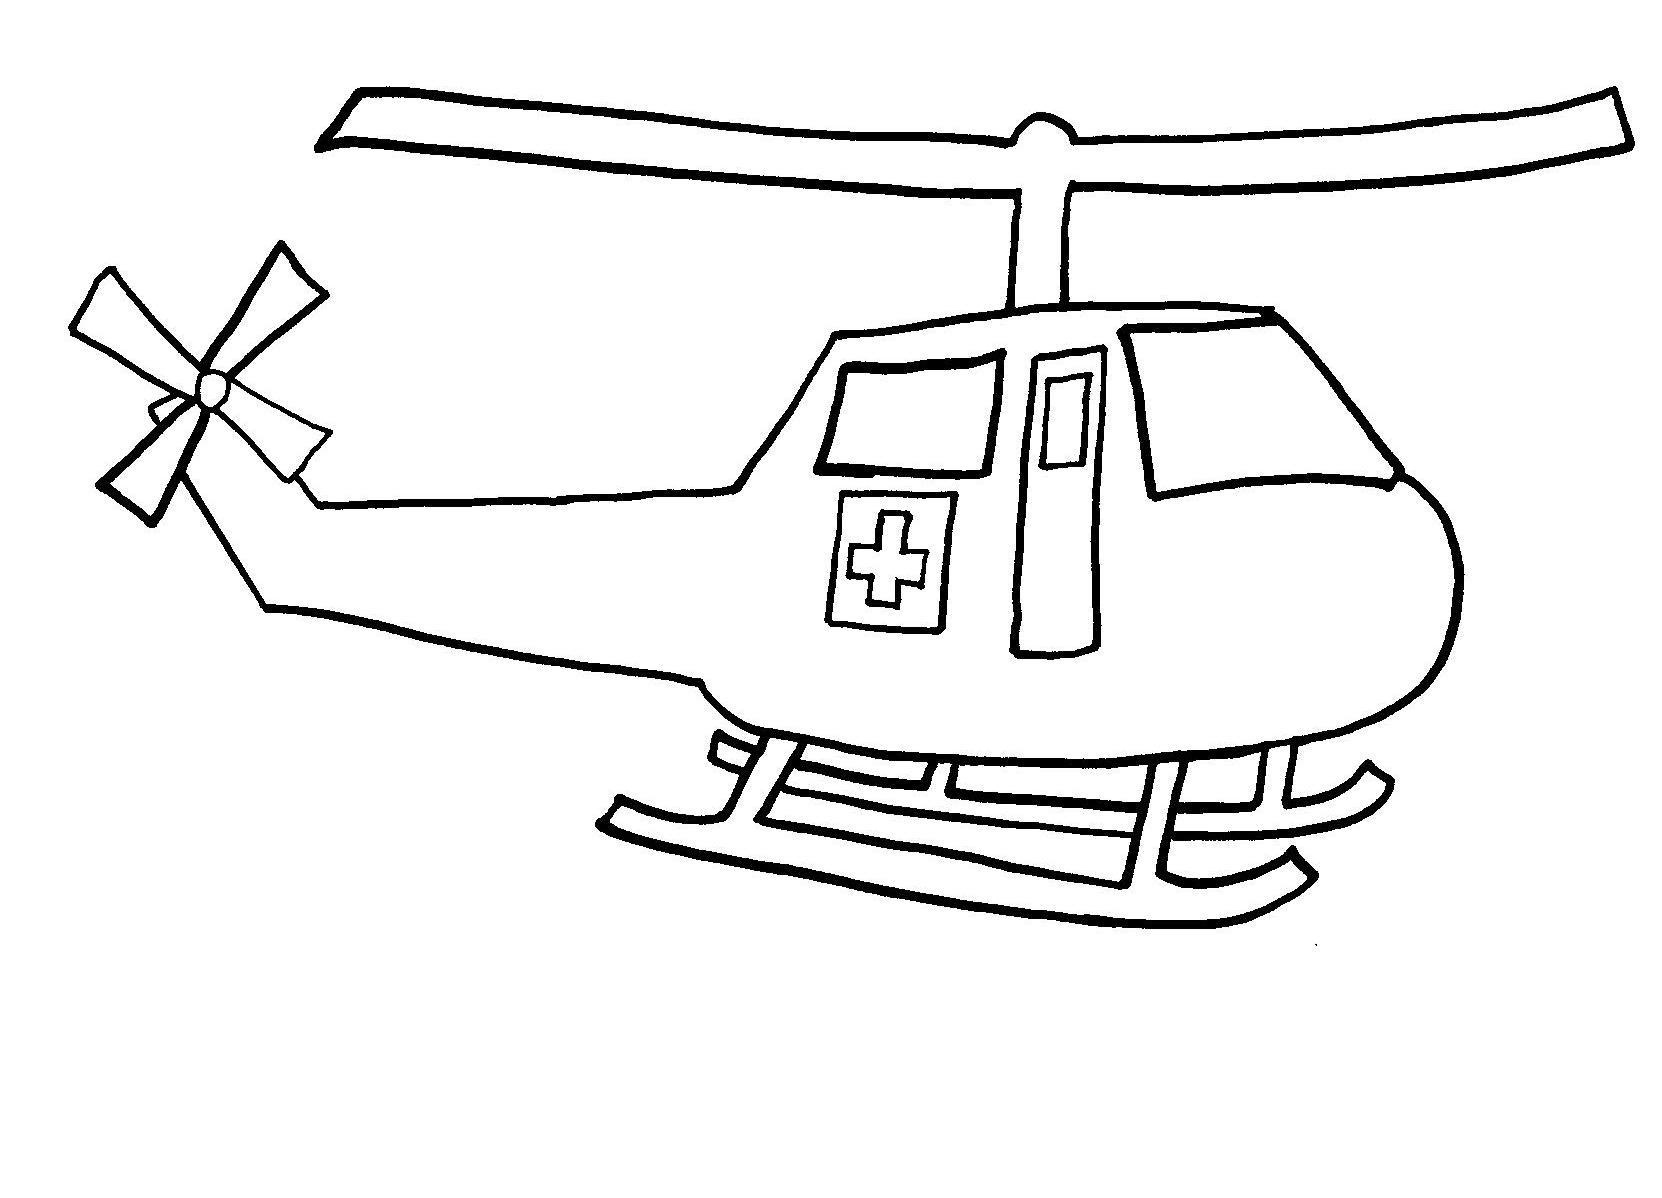 1662x1198 Revisited Coloring Pages Of Helicopters Printable Helicopter